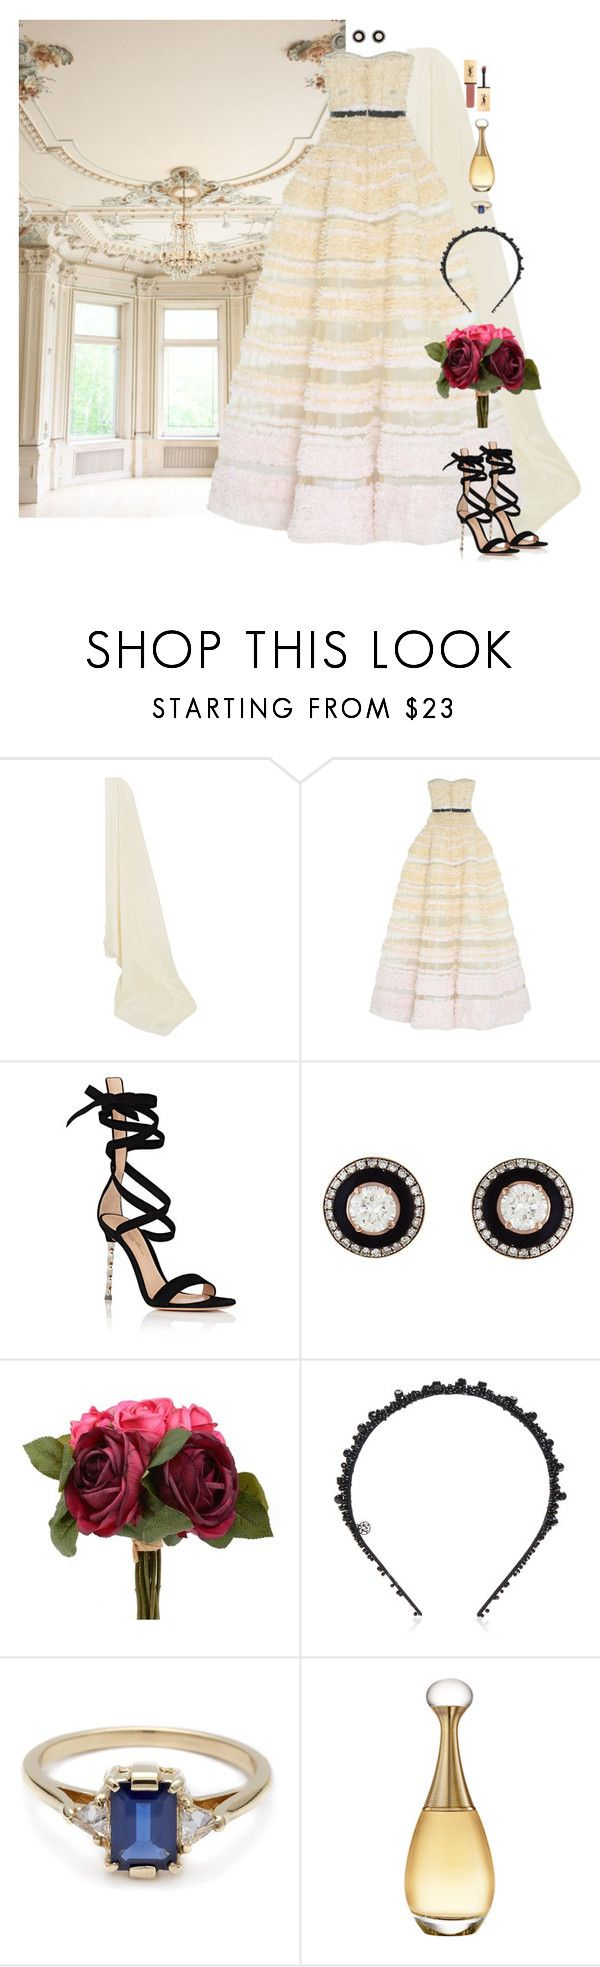 """""""The Ballroom Bride"""" by xoxomuty on Polyvore featuring Etro, Marchesa, Gianvito Rossi, Selim Mouzannar, BEA, Christian Dior, Yves Saint Laurent, bride, ootd and wedding"""